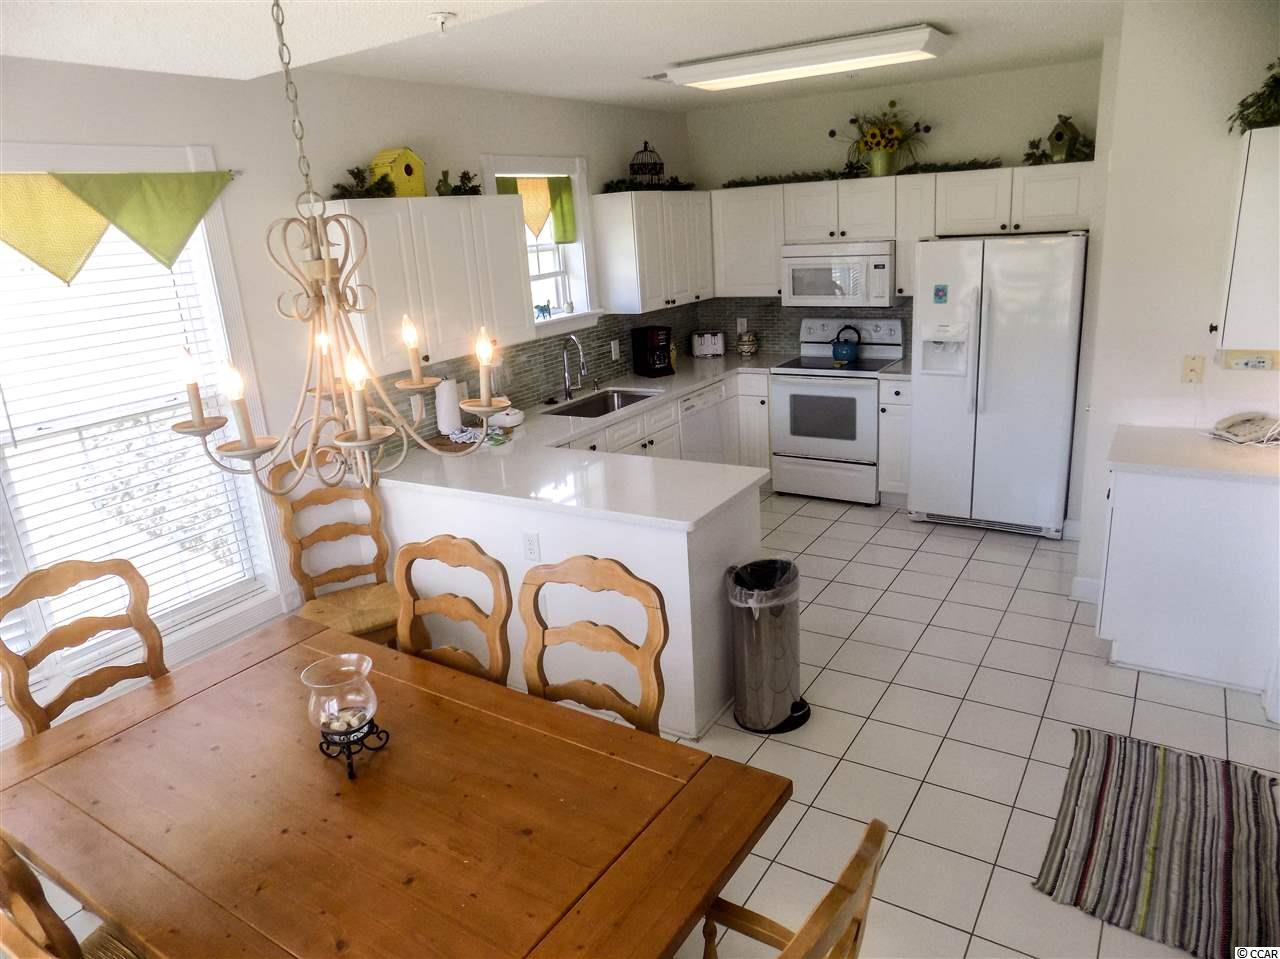 MLS #1713133 at  Harbour Cove at Barefoot Resort for sale